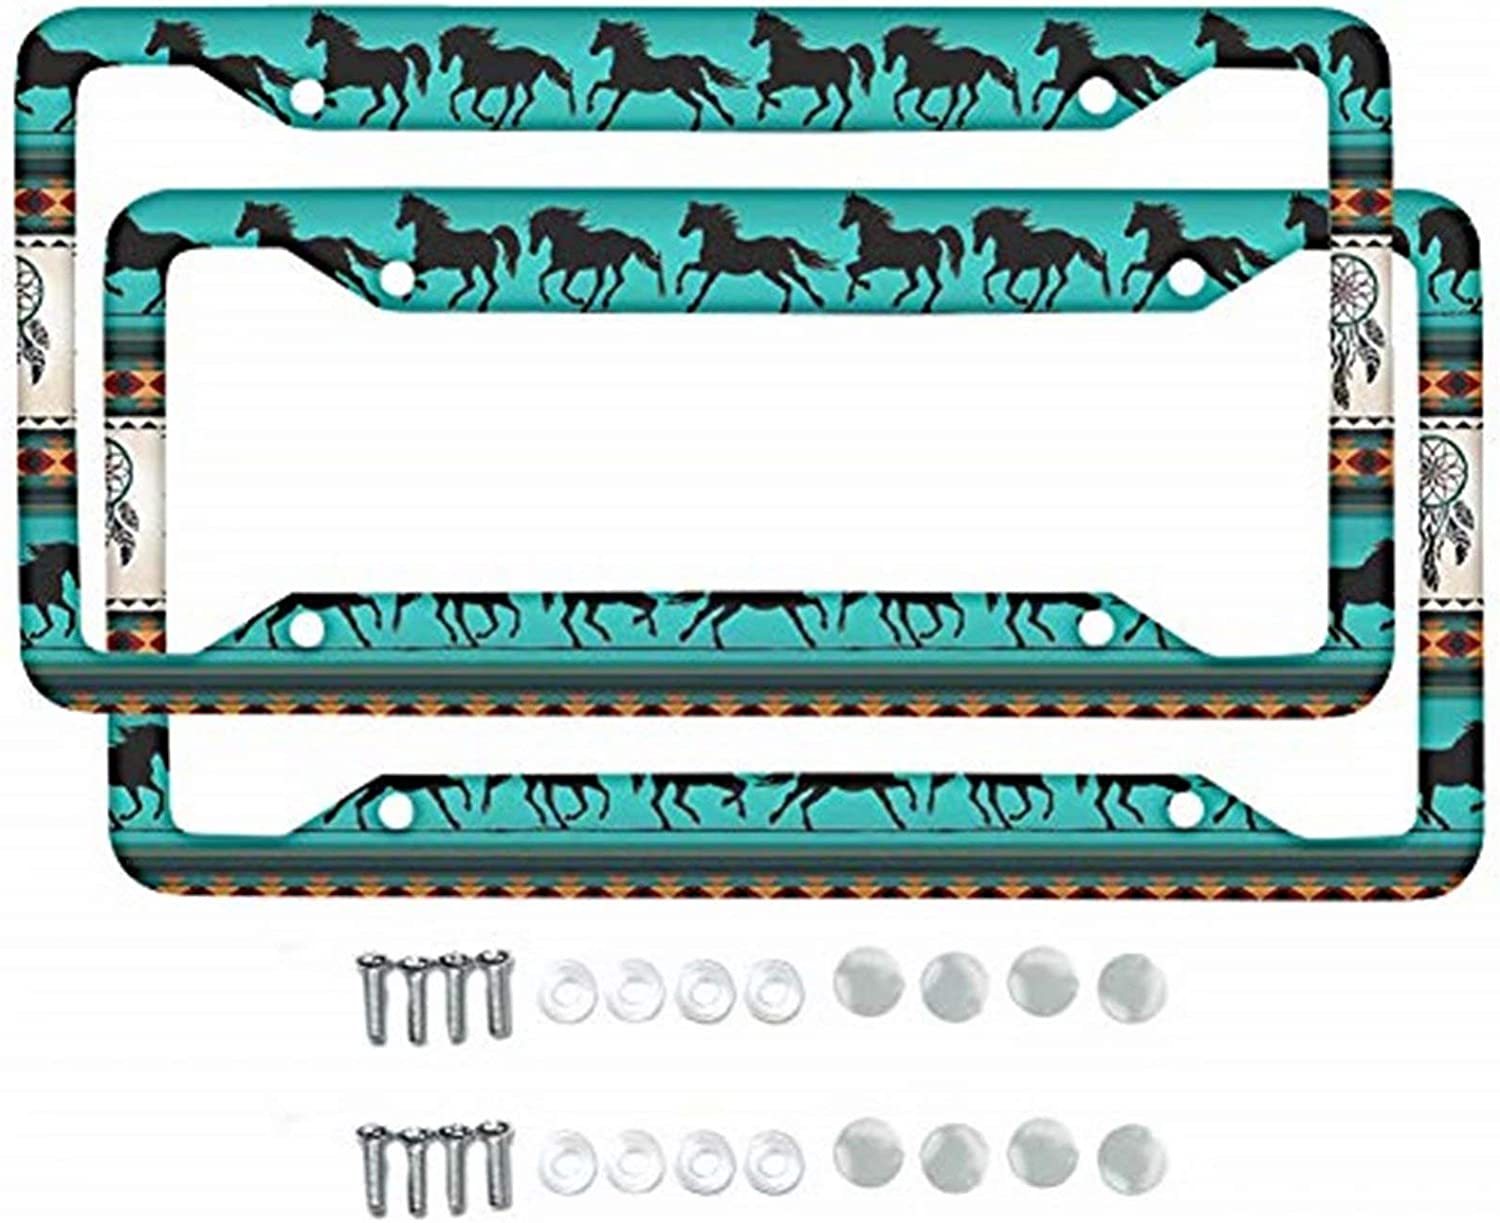 Dolyues Online limited product Genuine Automotive Metal License Plate Frame Women Men for Cover